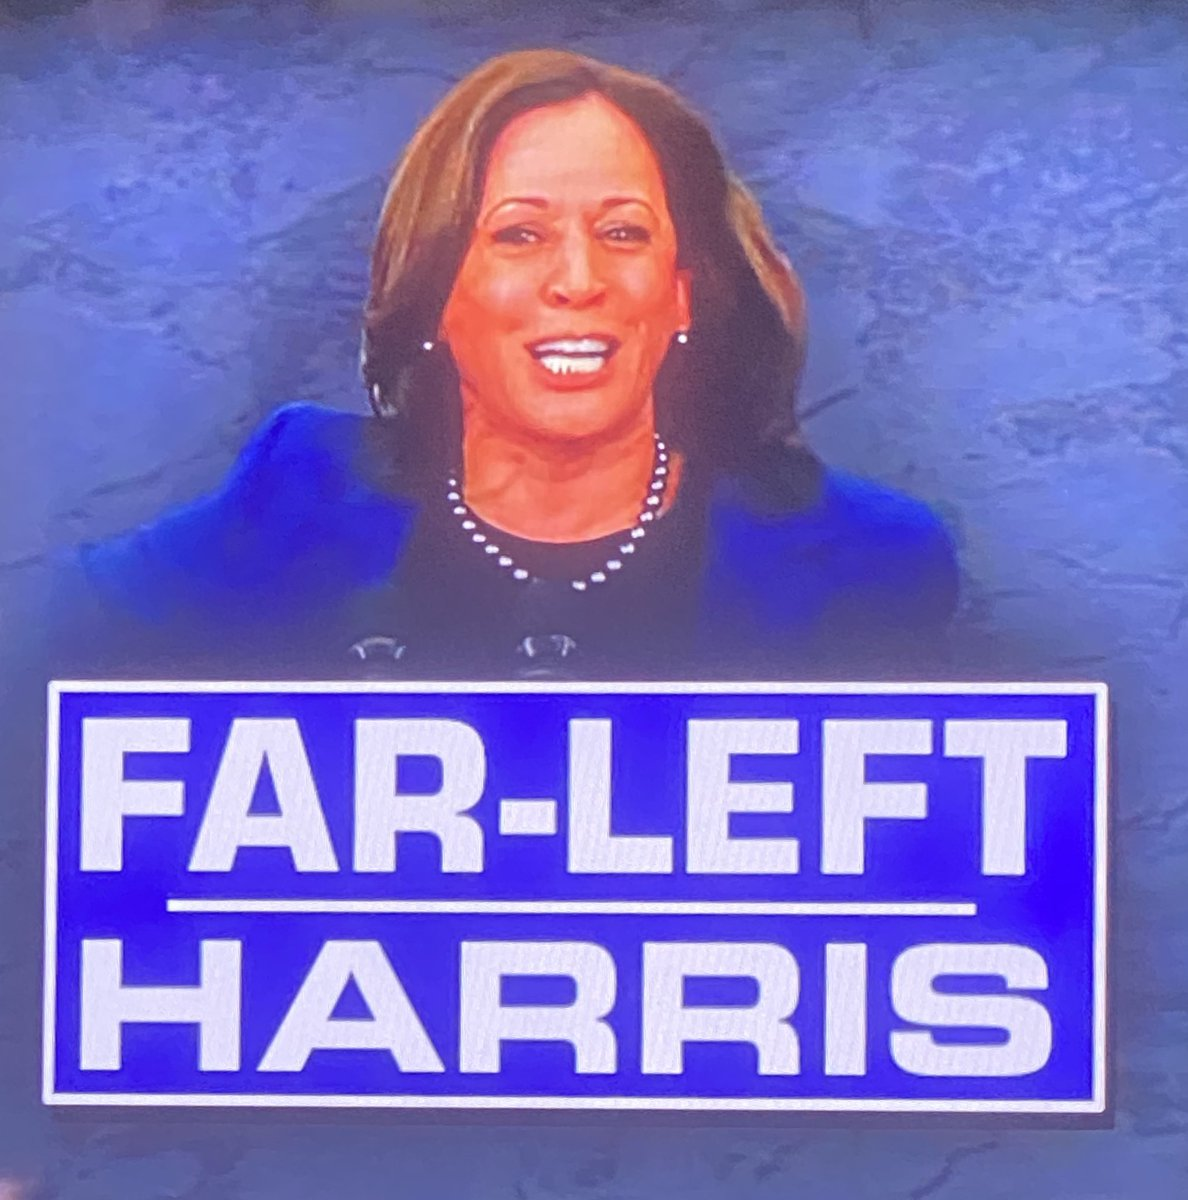 """Harris says """"I am ready to go to work."""" Yep, to tax the middle class out of existence and destroy the country by turning it into a socialist state. #Trump #maga #gop #potus #dems #seanhannity #tuckercarlsontonight #ingrahamangle #realDonaldTrump #Trump2020 #wattersworld"""